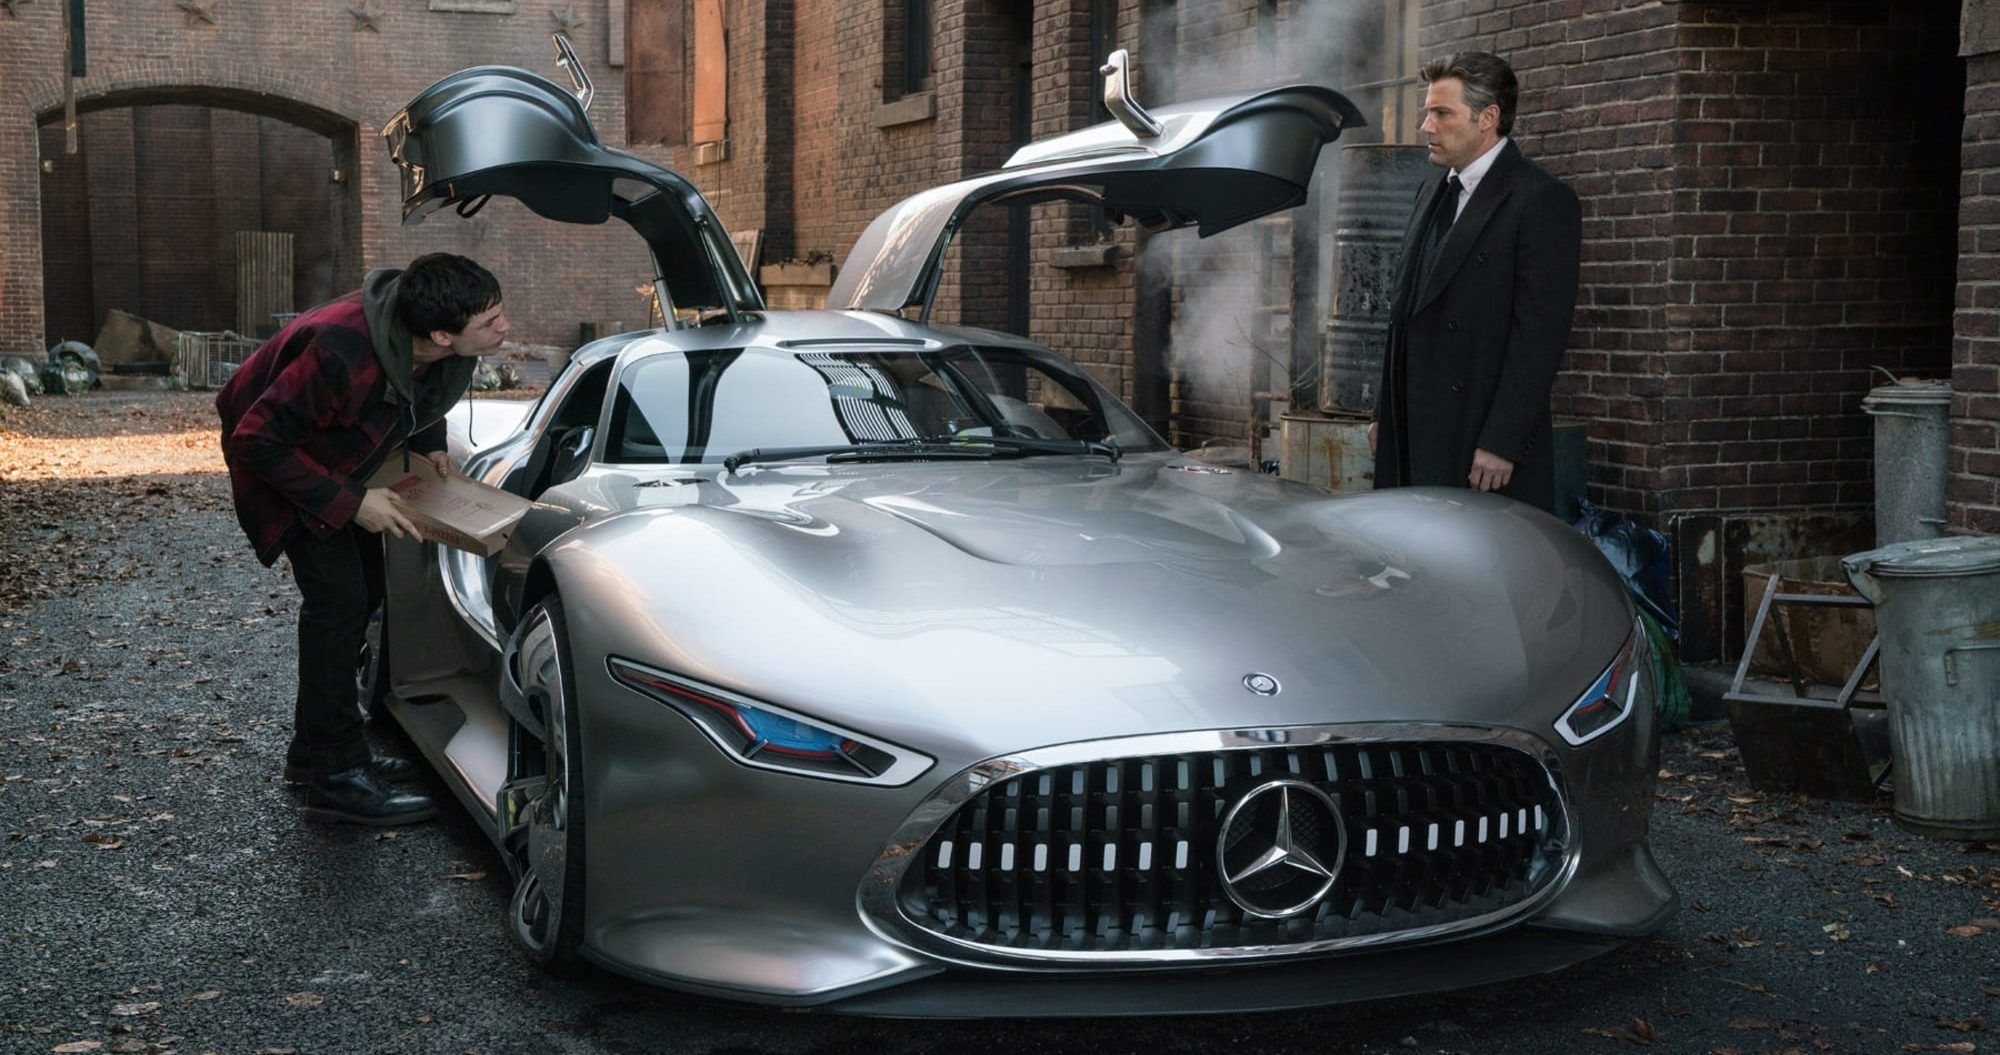 10 Coolest Movie Concept Cars Ever Seen The Big Screen | HotCars